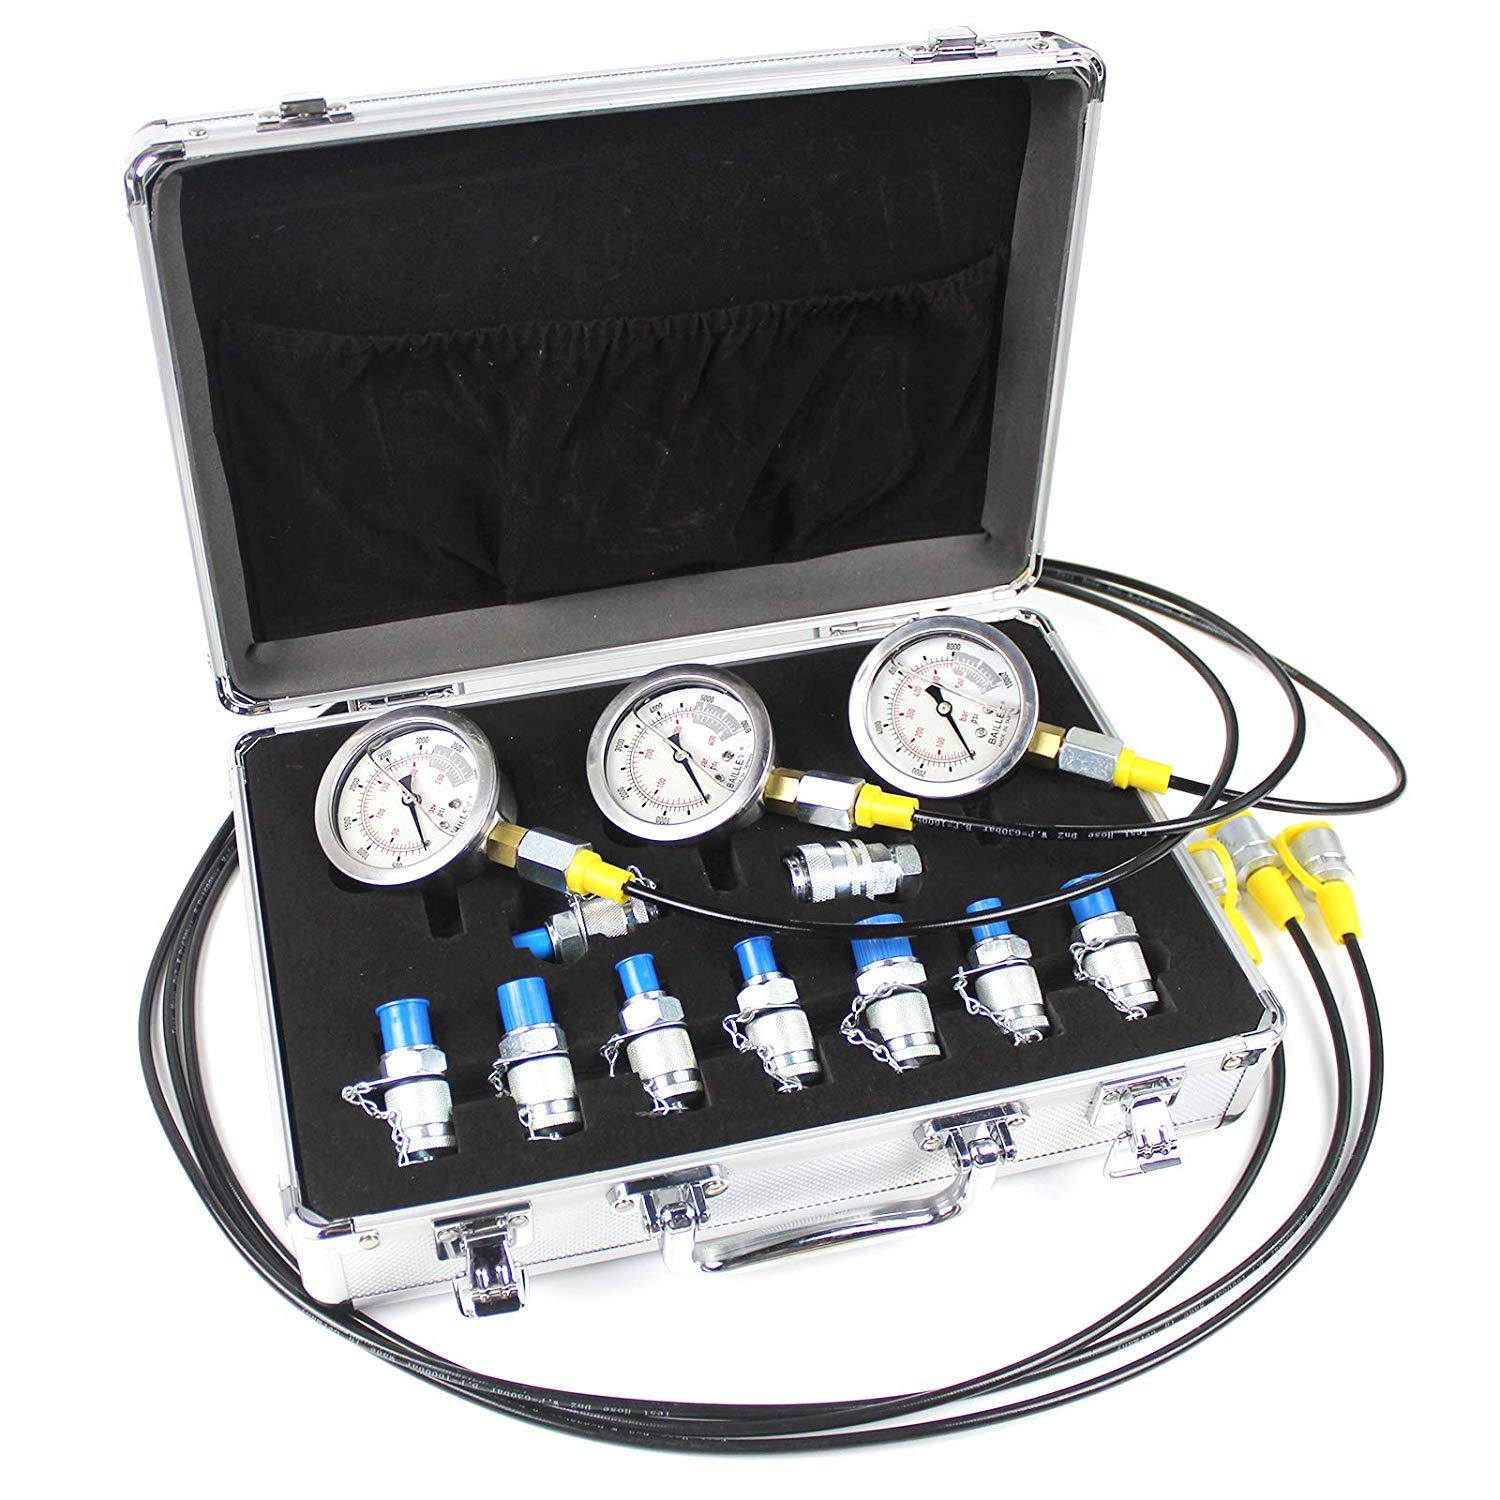 COPACHI 9000psi 25/40/60mpa Hydraulic Pressure Guage Test Kit with 3pcs Oil Gauges 3pcs Test Hose 10pcs Texter Coupling, in a Strong and Light Aluminum Case,Gold and Silver are Randomly Sent